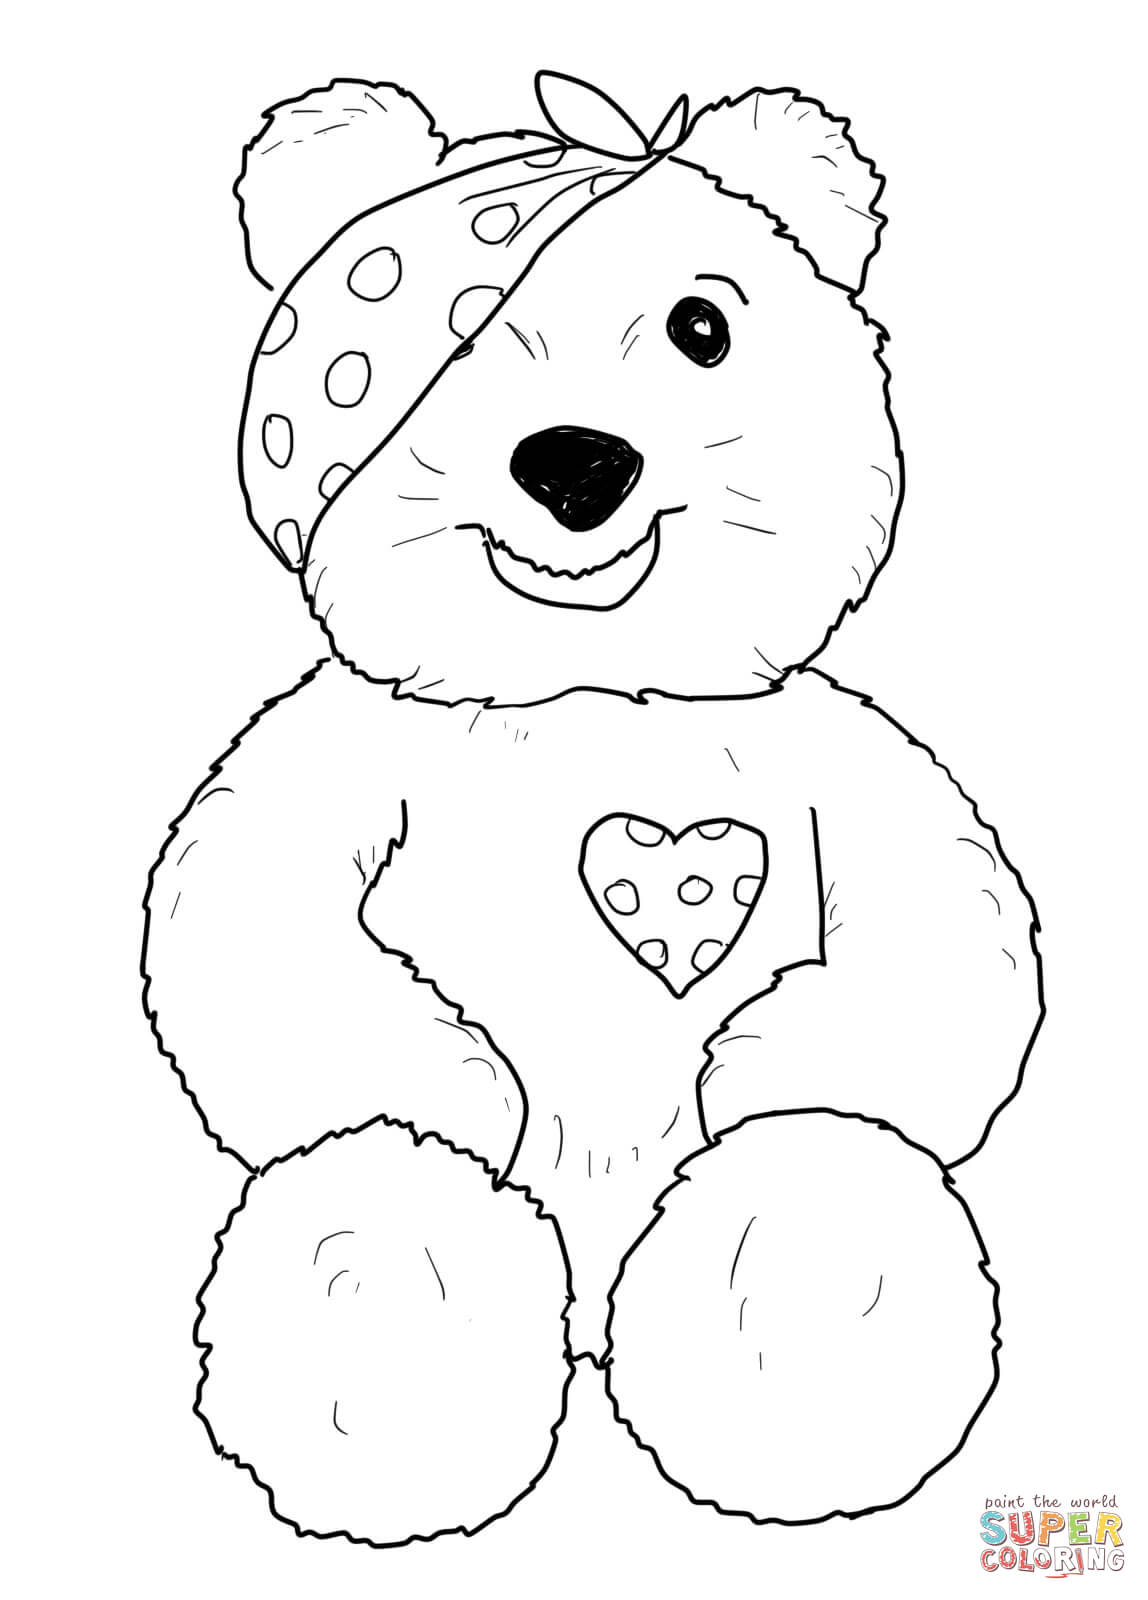 pudsey bear colouring 93 coloring pages pudsey bear printable care bears bear colouring pudsey 1 1